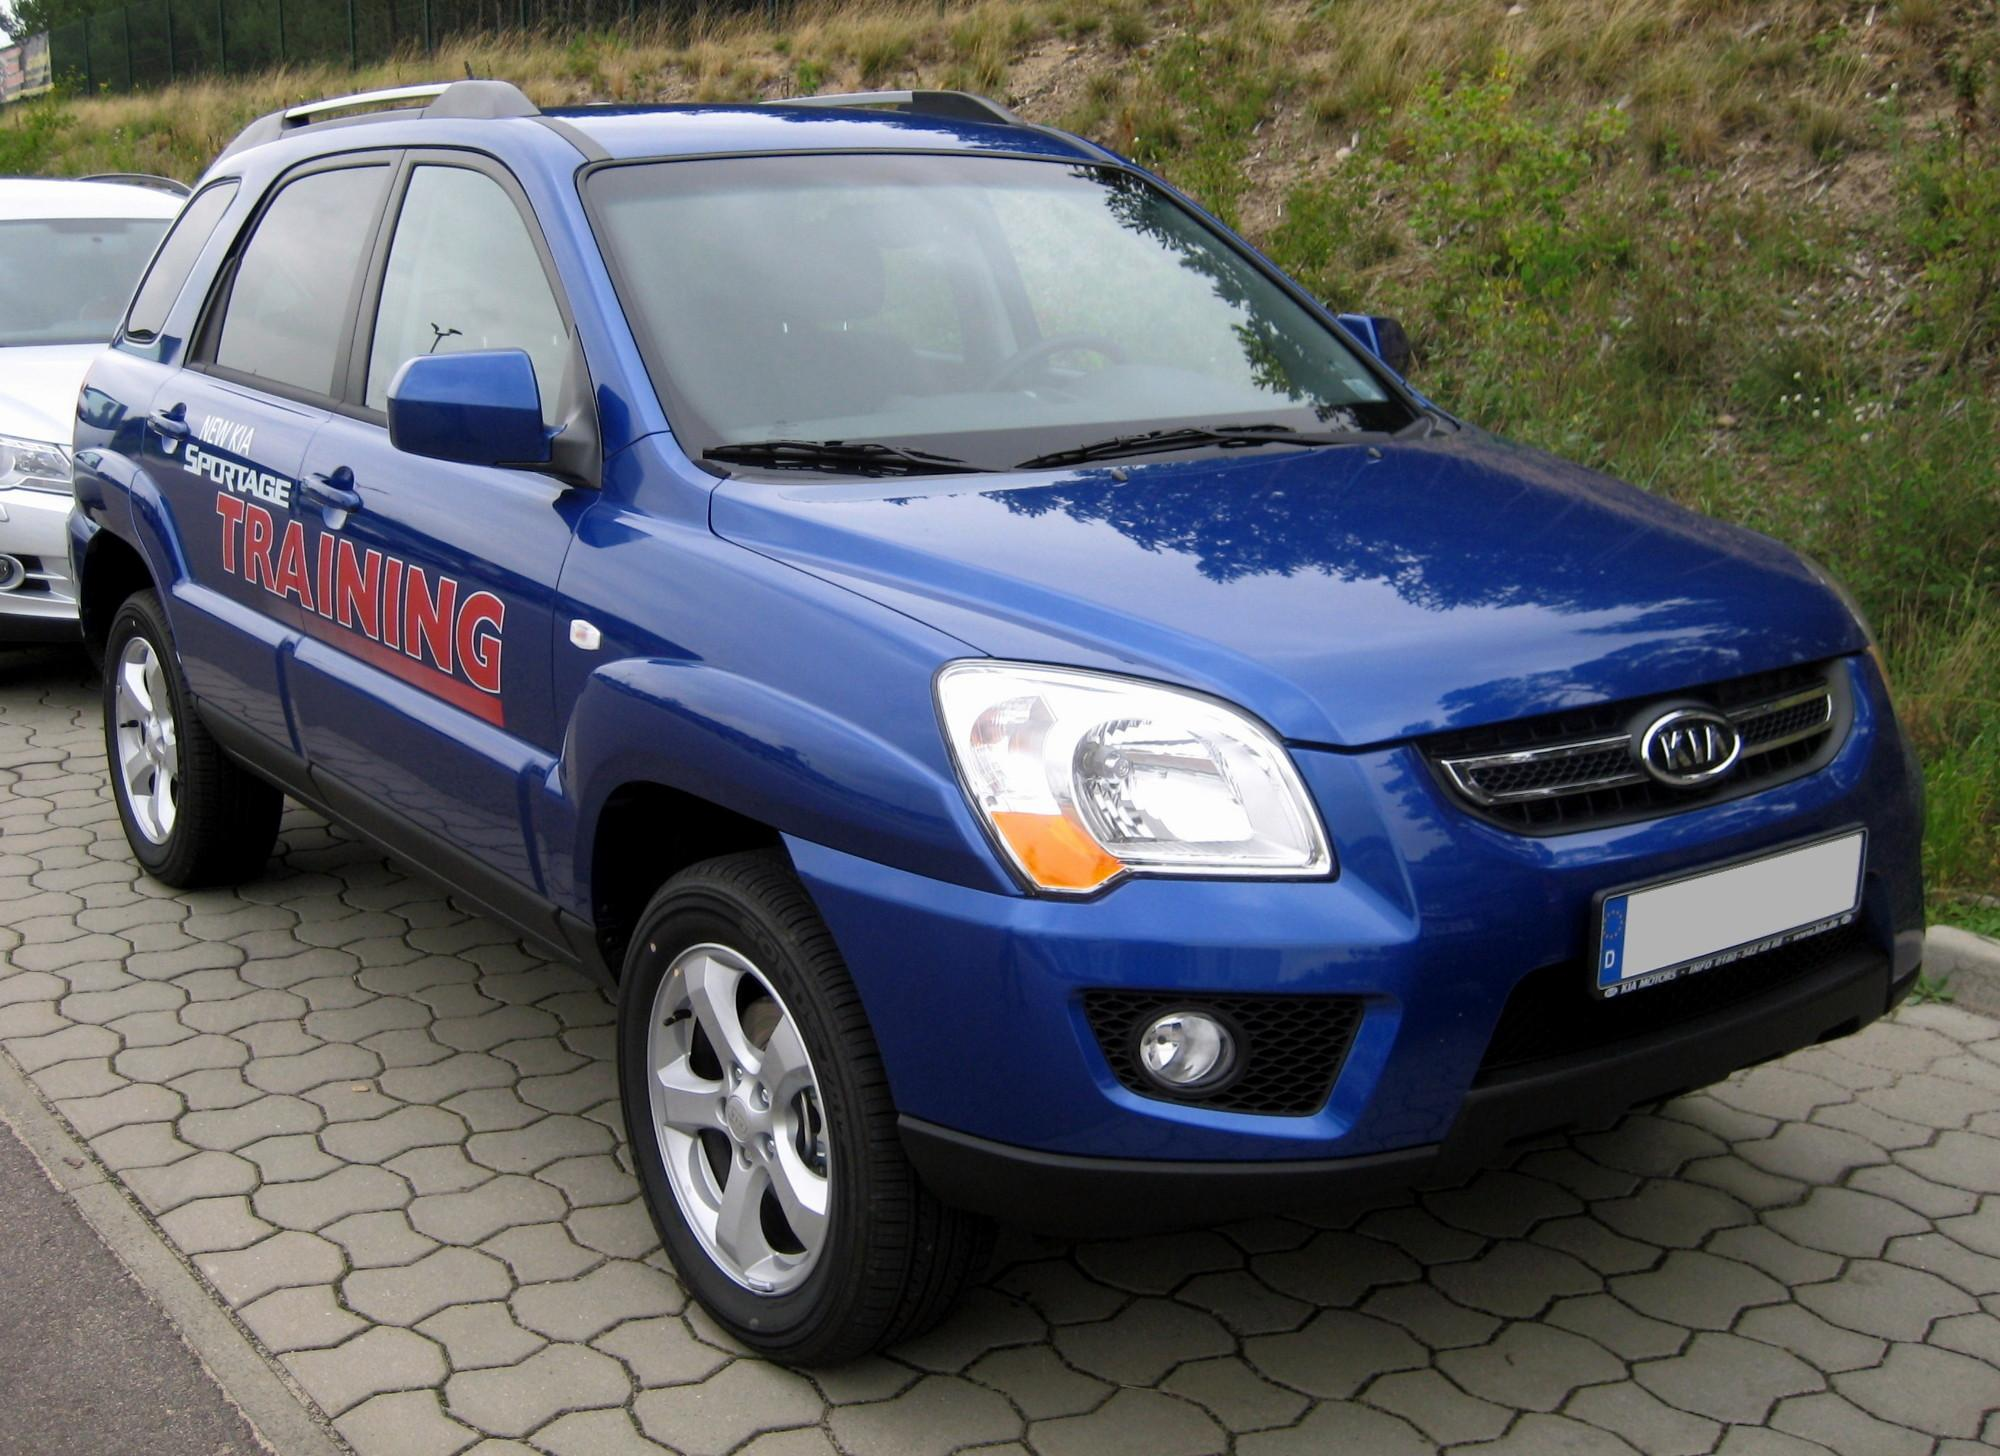 2008 Kia Sportage Ii Pictures Information And Specs Auto Car Dashboard 08 7